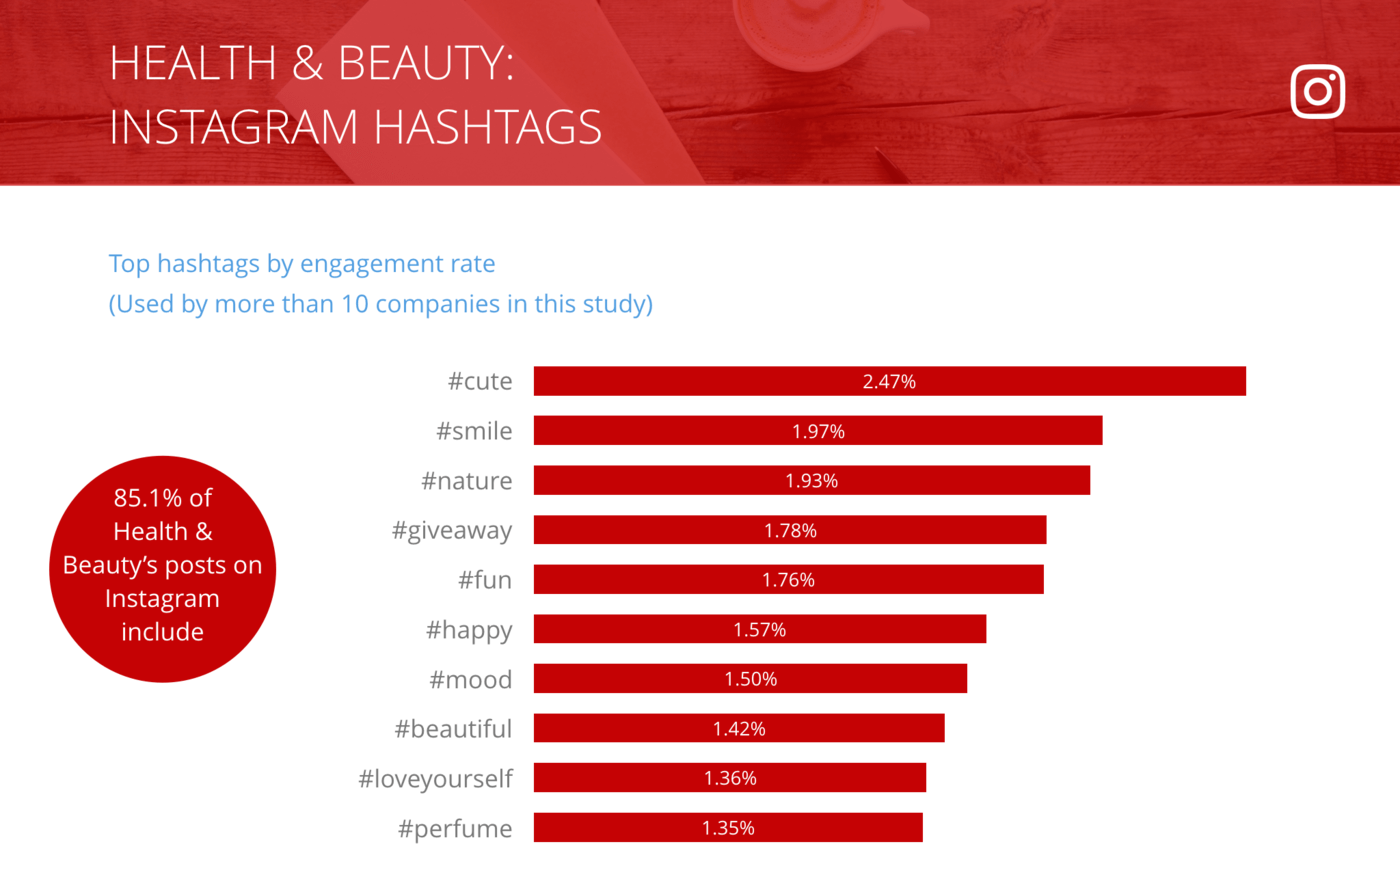 slide for Instagram Top Hashtags by Engagement Rate per Post, Health & Beauty